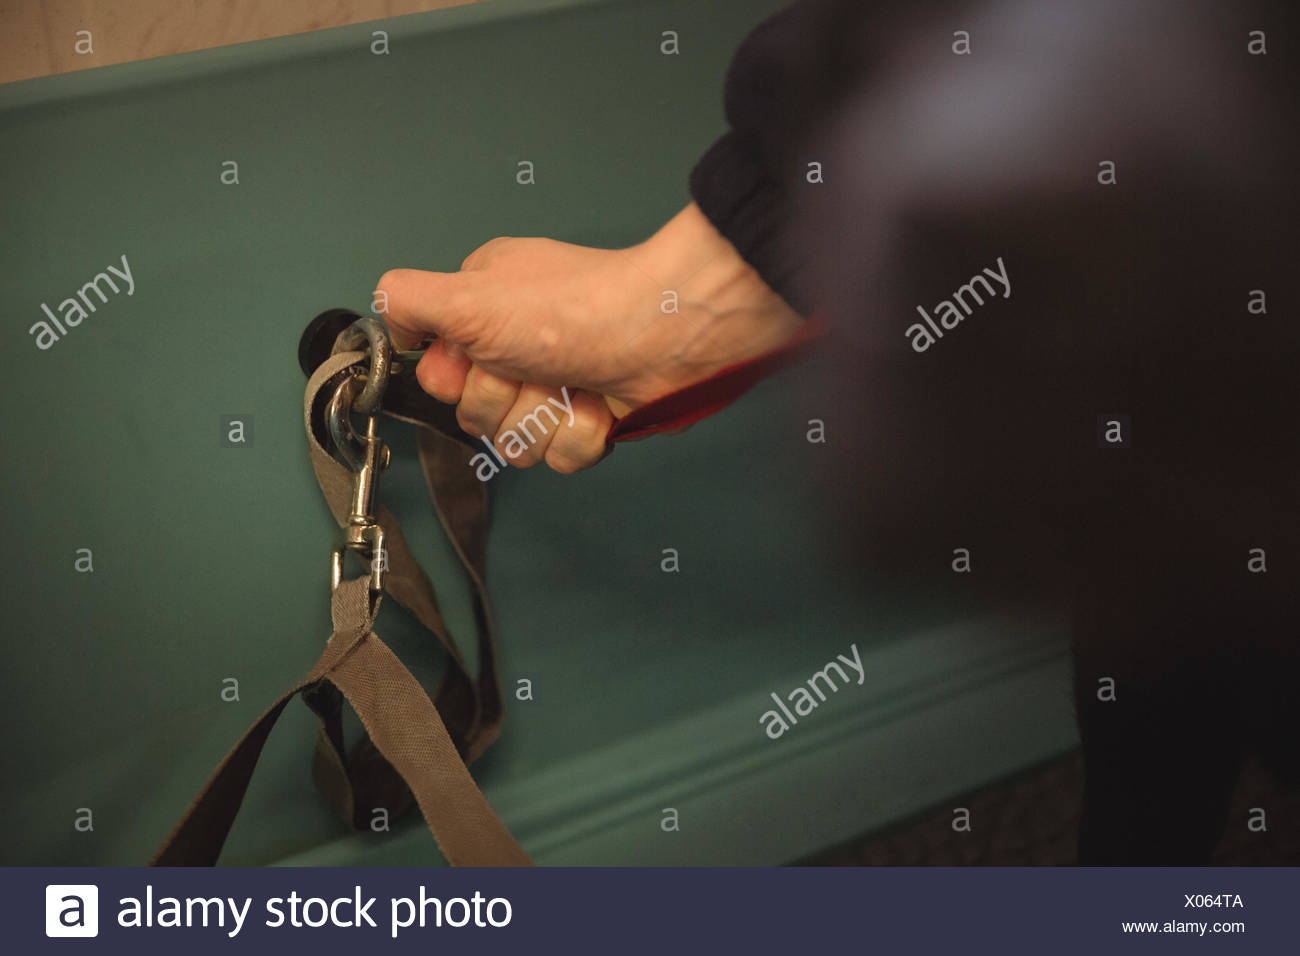 Woman connecting dog lead on hook in bathtub - Stock Image